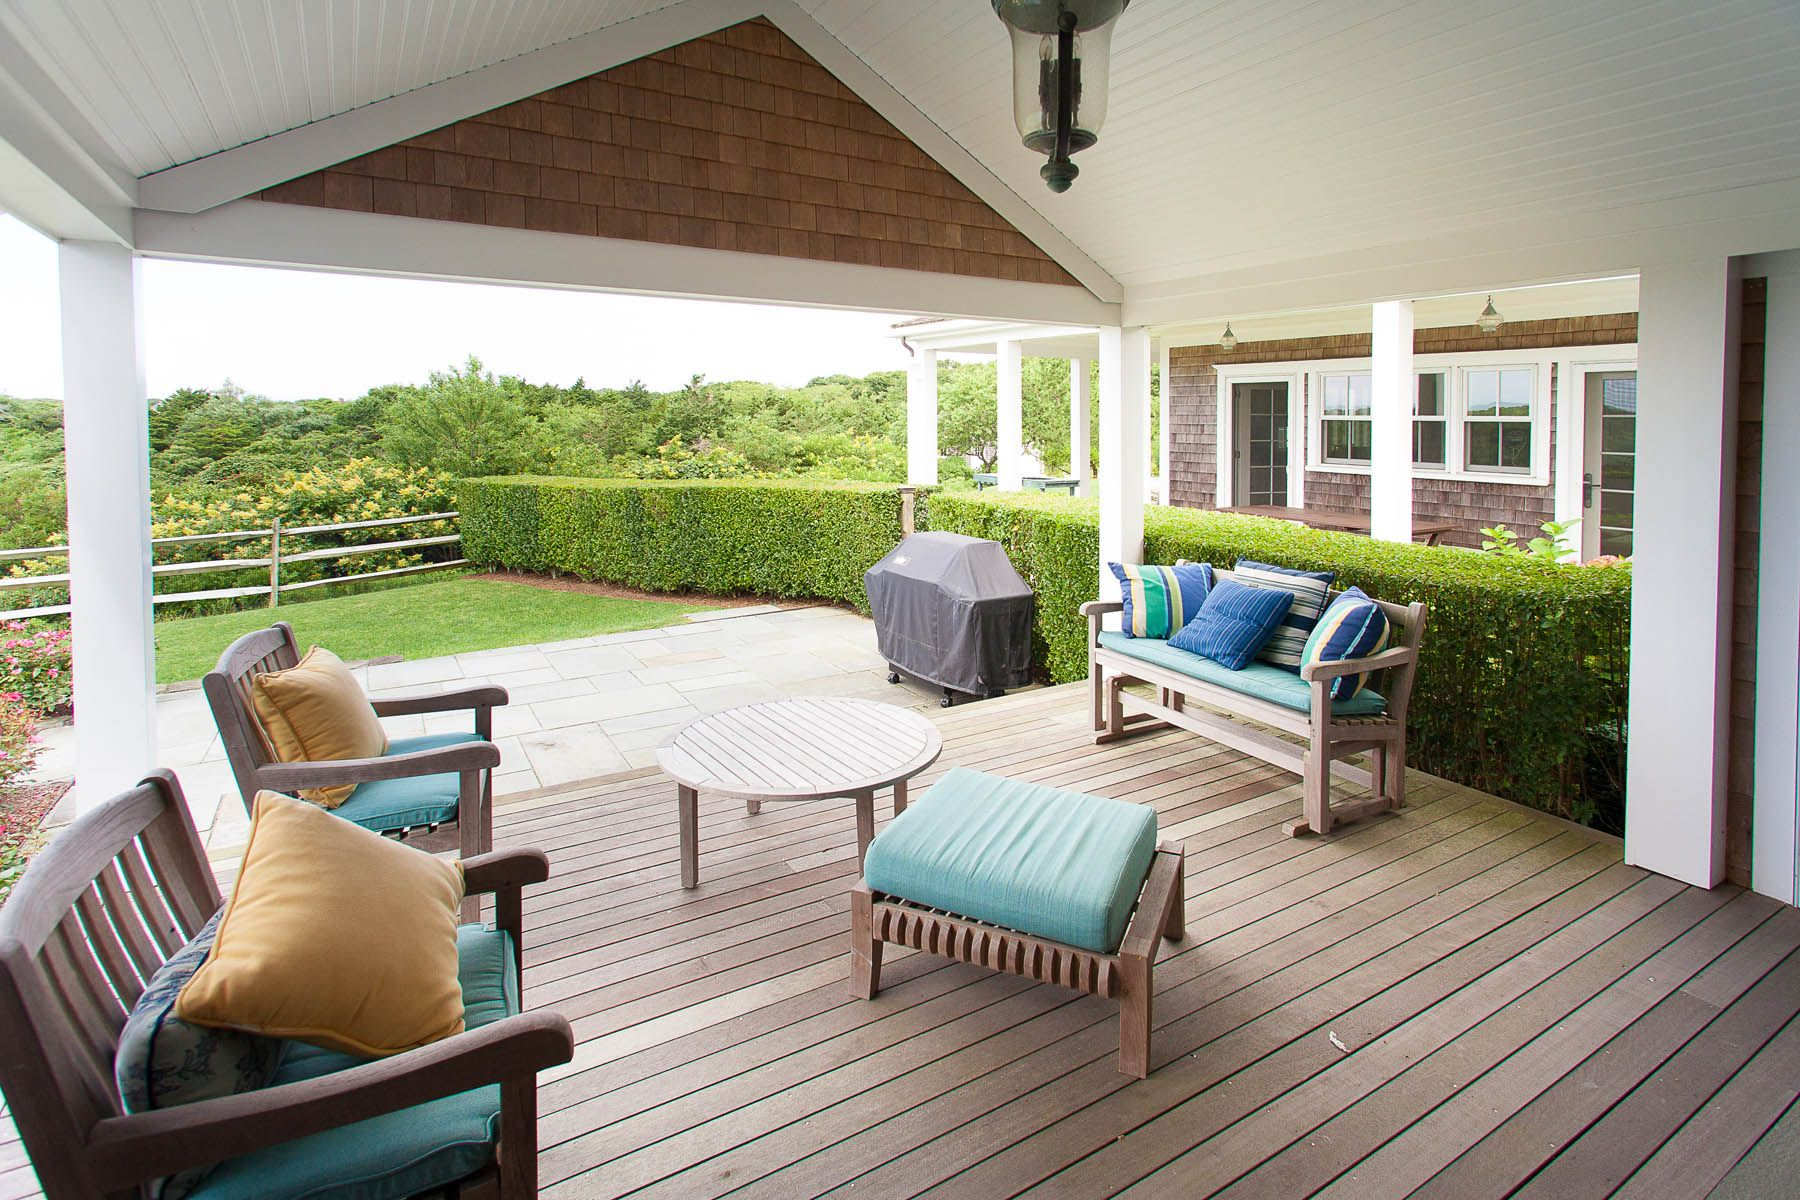 ipe outdoor decking living space in 2020 | Outdoor ... on Living Spaces Outdoor Sectional id=19743